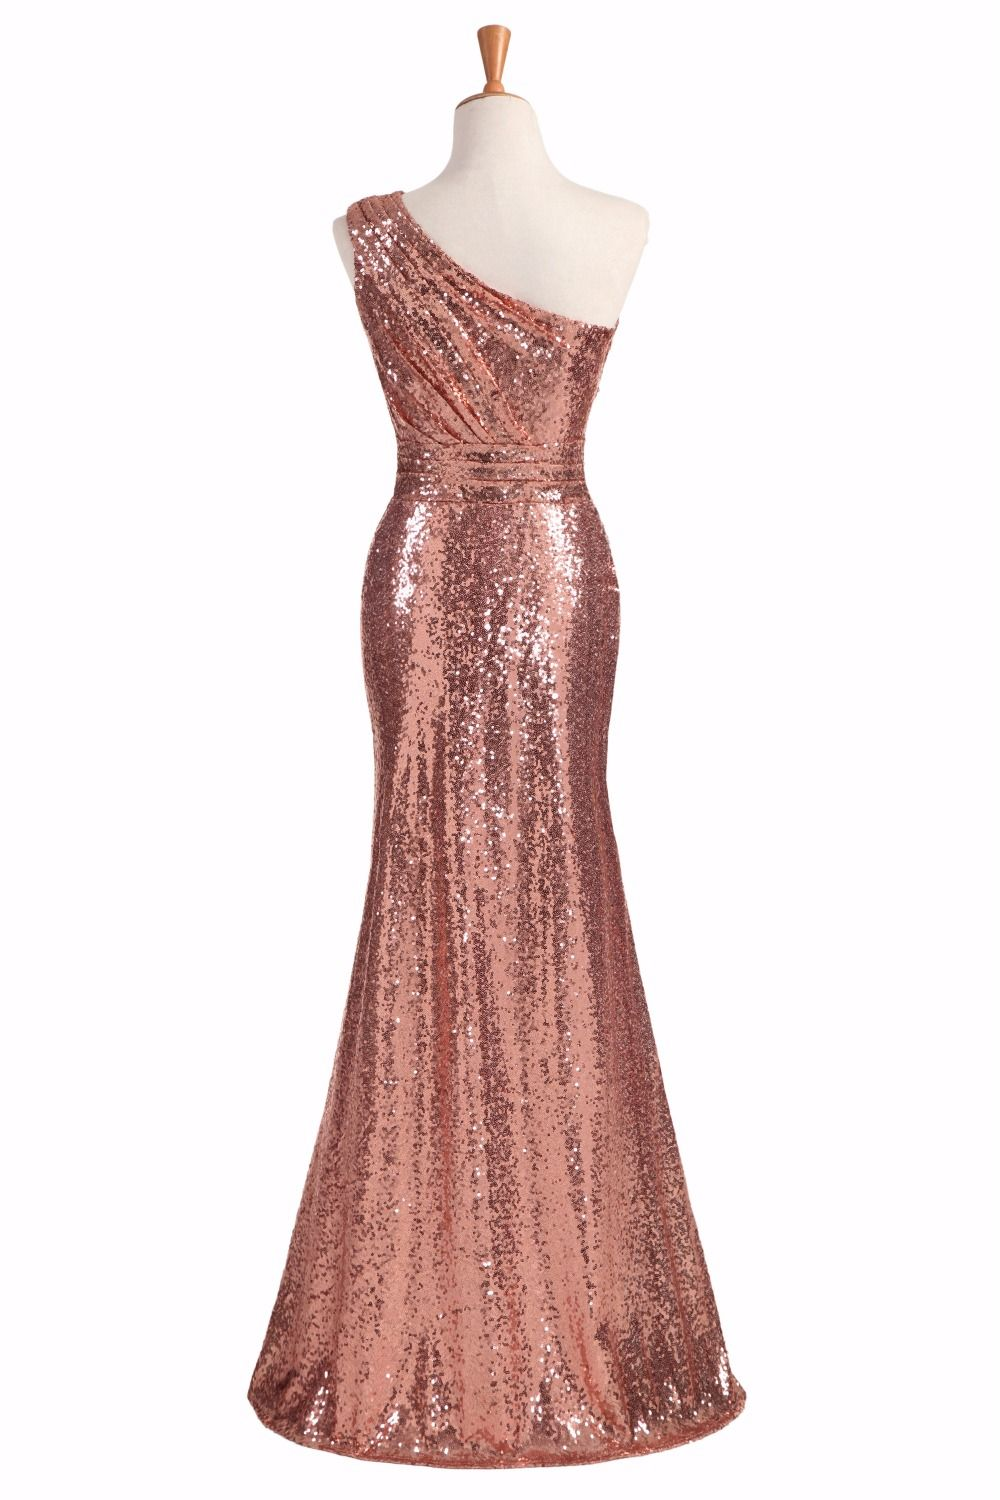 Rose gold wine red blue oneshoulder colorful sparkly long sequins